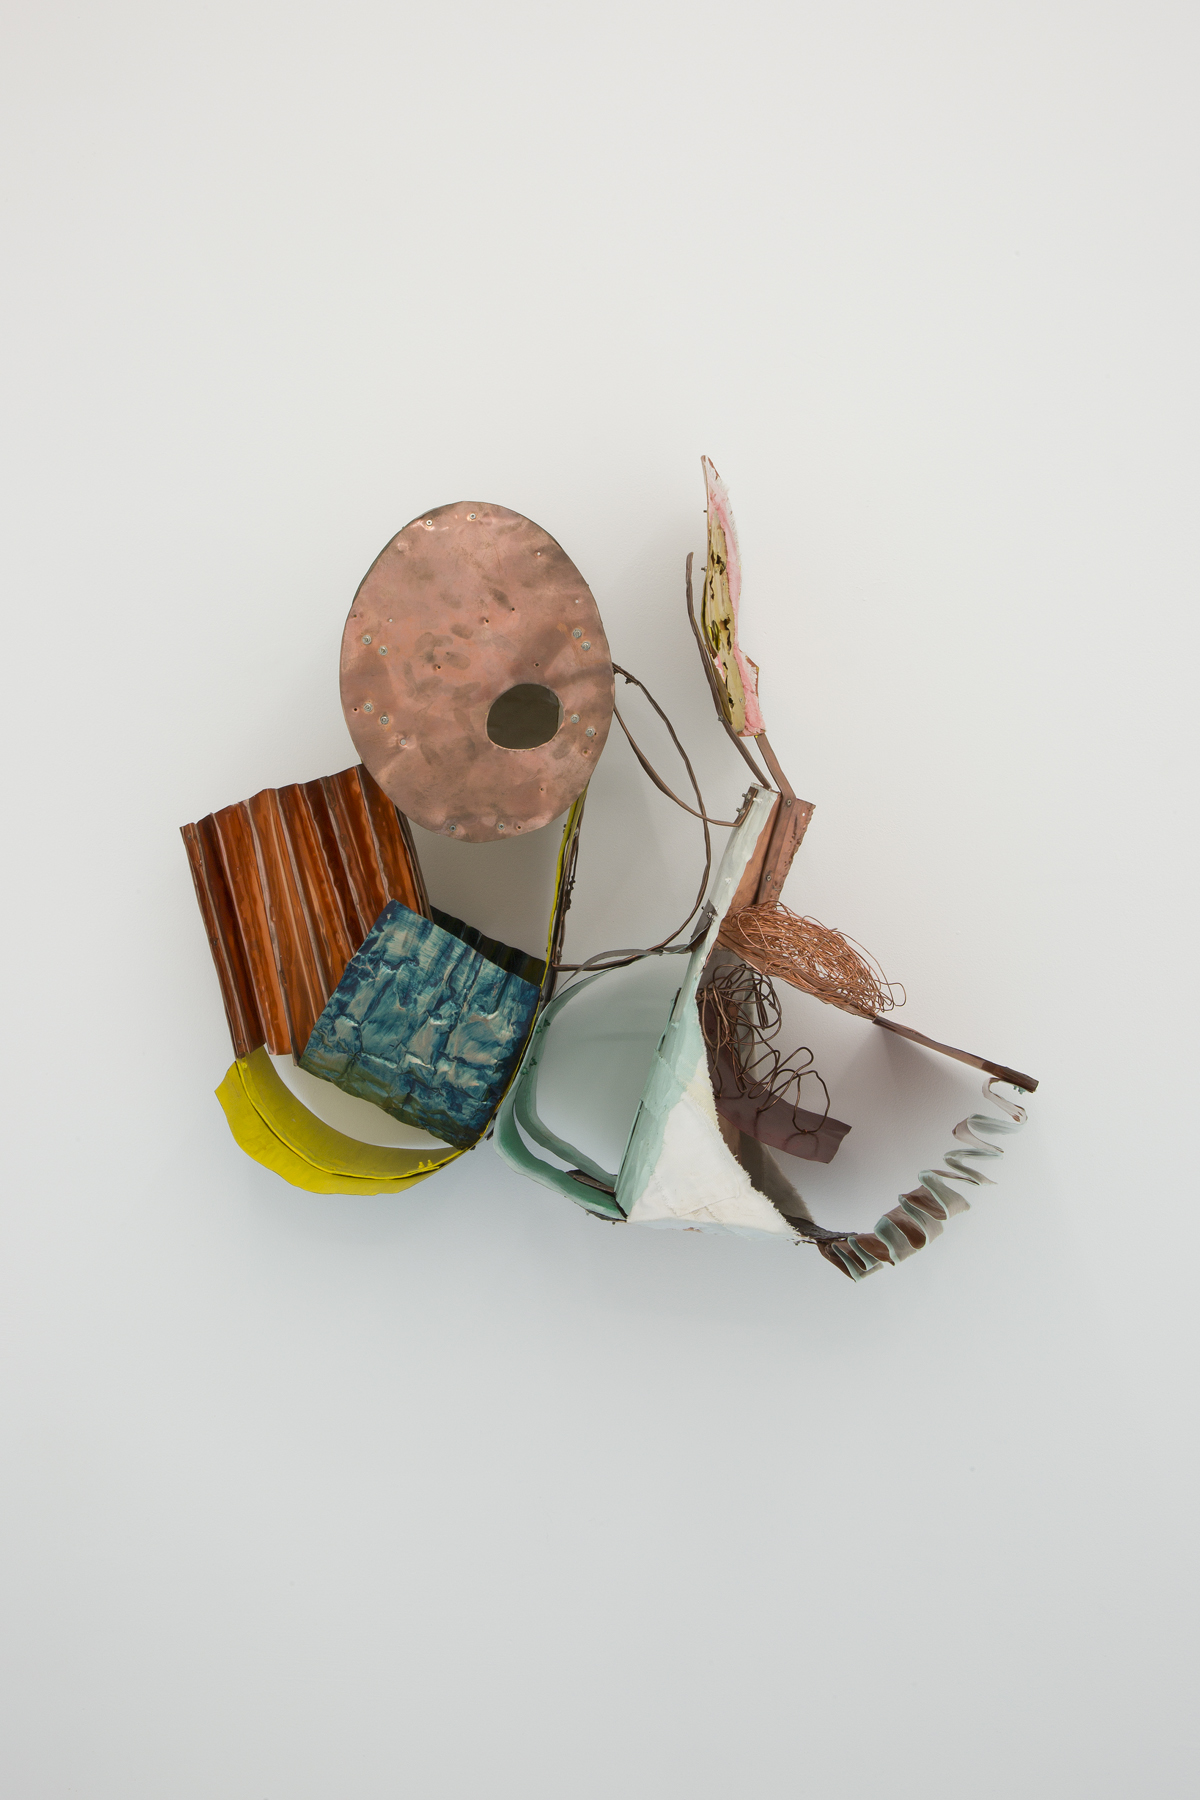 Miho Dohi, Buttai 31, 2014.  Copper plate, cloth and other, h55 x w64 x d26 cm (21.65 x 25.19 x 10.23 in.)